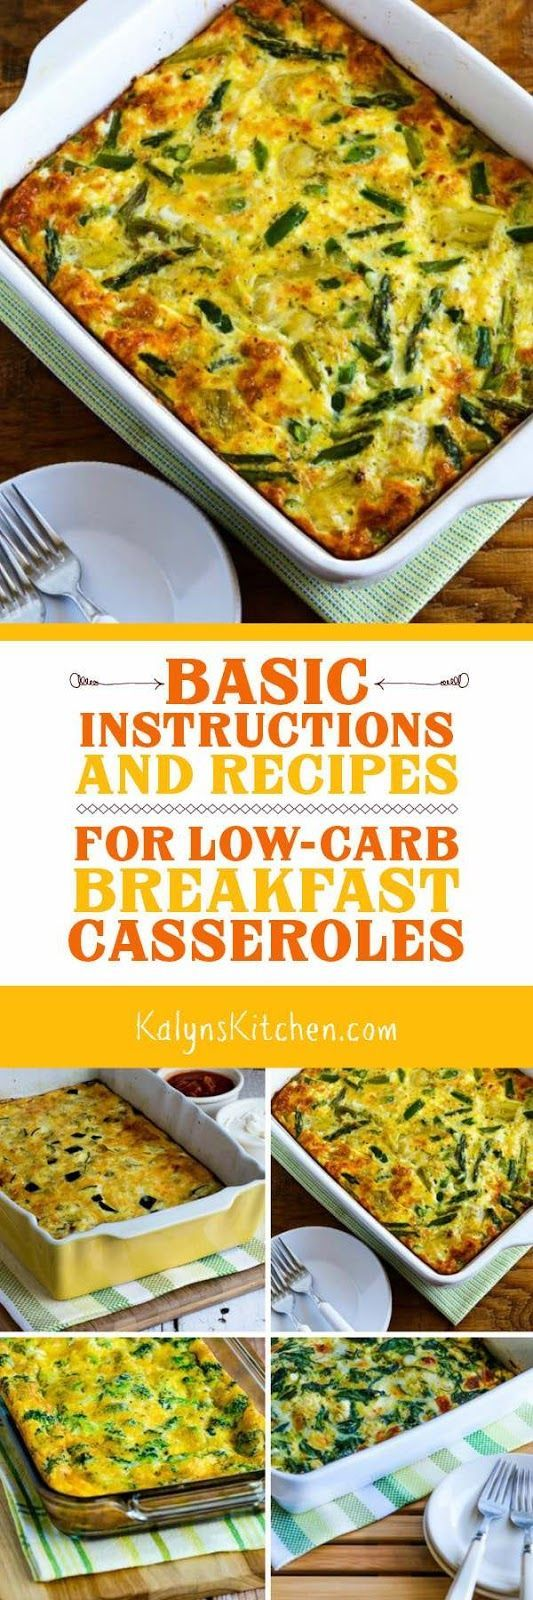 My blog has a lot of breakfast casserole recipes, but this post has the Basic Instructions and Recipes for Low-Carb Breakfast Casseroles, with amounts and cooking times for various sizes of casserole dishes. Once you have this information, you can turn leftover meats and/or veggies into a tasty breakfast casserole. All the recipes in the post are also gluten-free and South Beach Diet friendly. [found on KalynsKitchen.com]